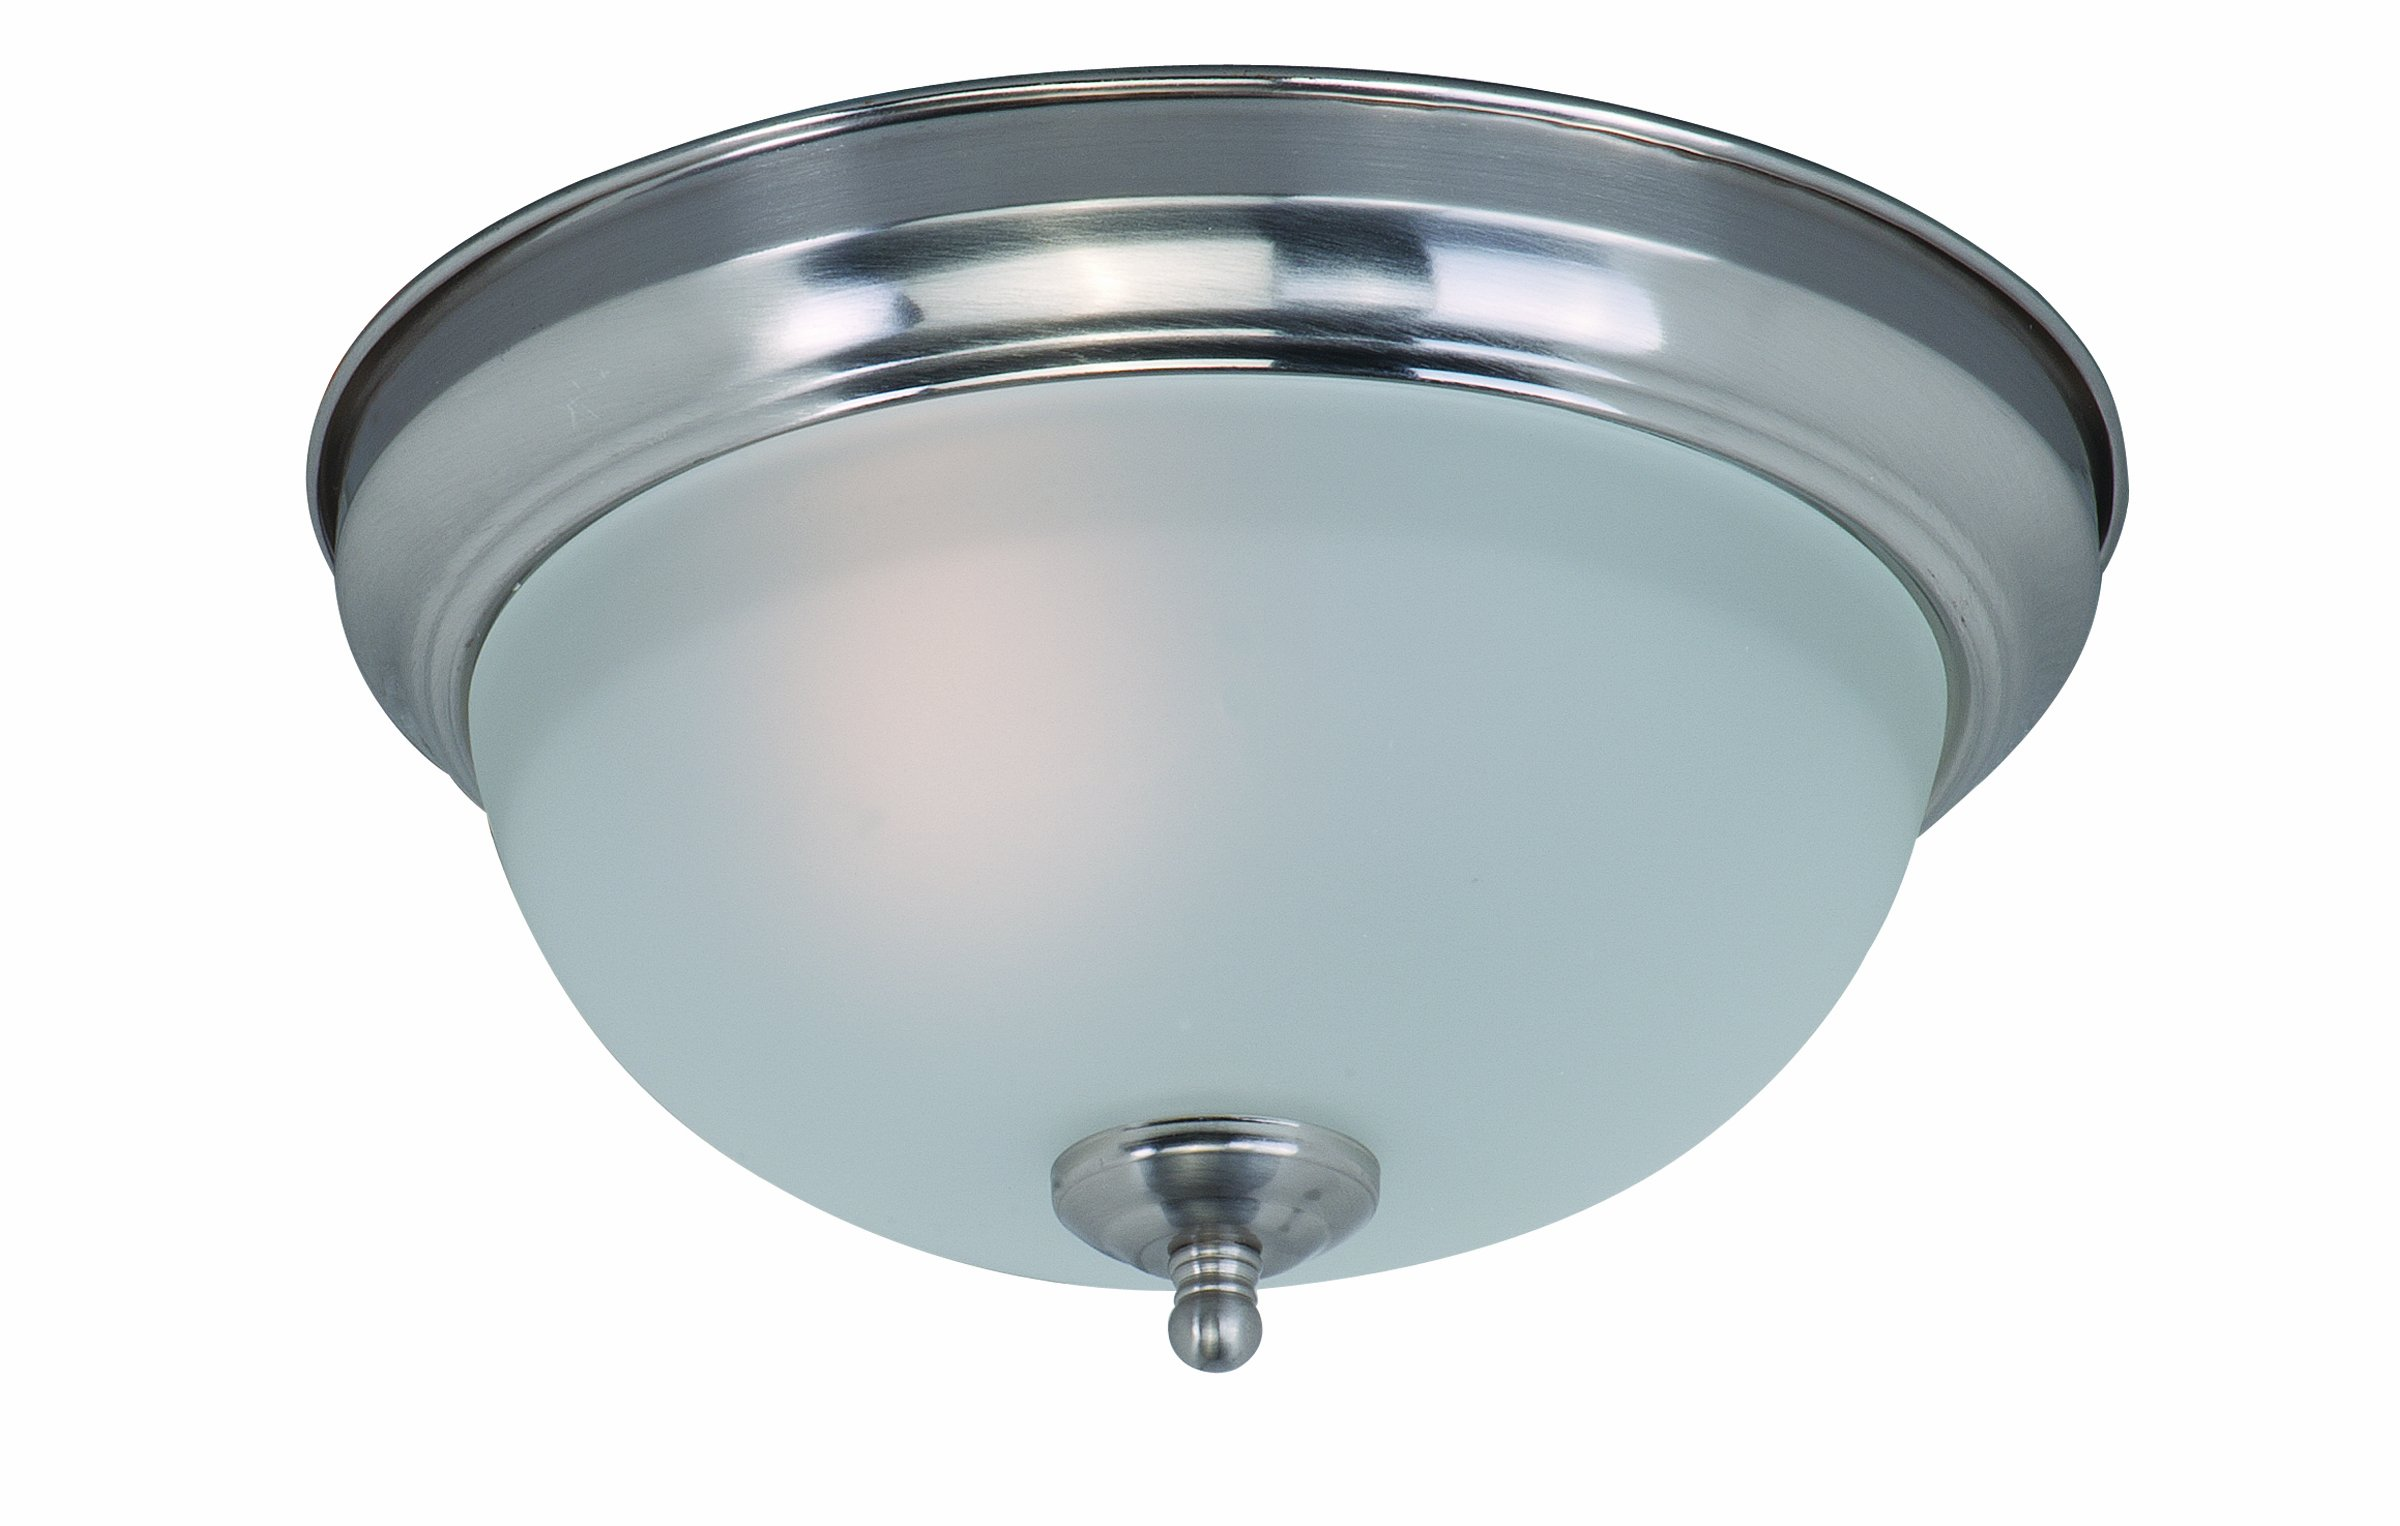 Maxim 85840FTSN Flush Mount EE 1-Light Flush Mount, Satin Nickel Finish, Frosted Glass, GU24 Fluorescent Fluorescent Bulb , 60W Max., Dry Safety Rating, Standard Dimmable, Glass Shade Material, 1344 Rated Lumens